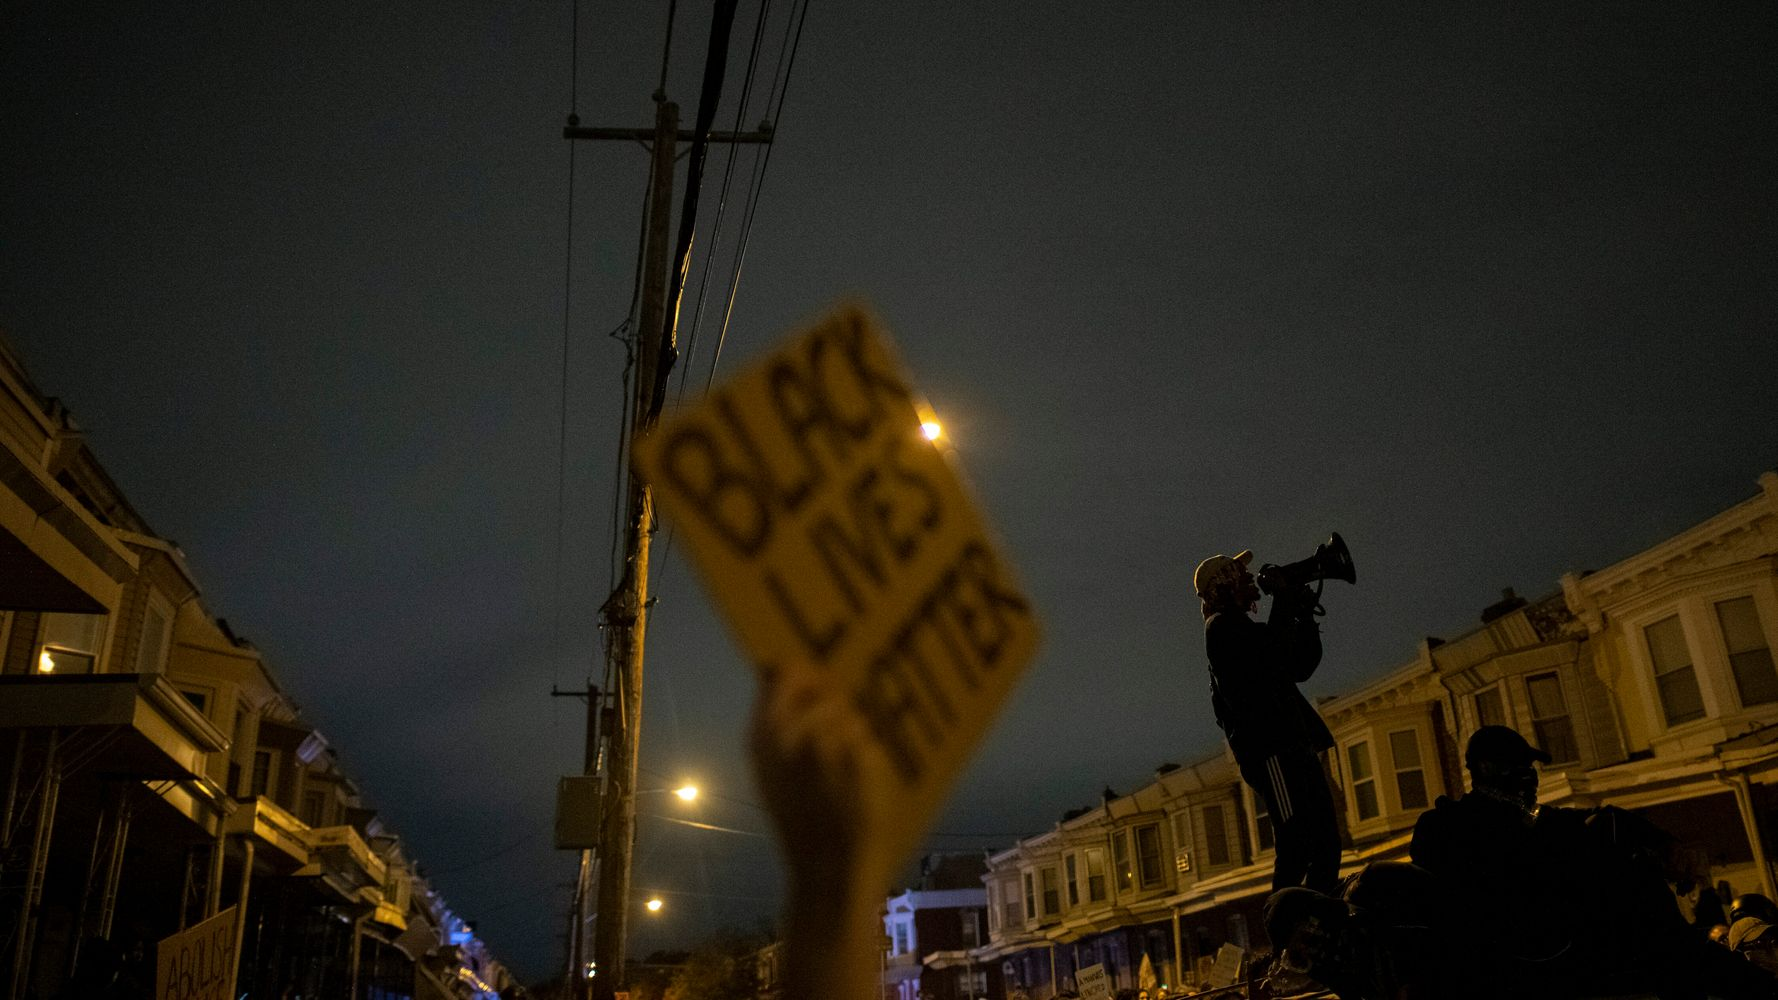 Amid More Protests Over Son's Police Death, Walter Wallace Sr. Says Violence 'Not Helping'